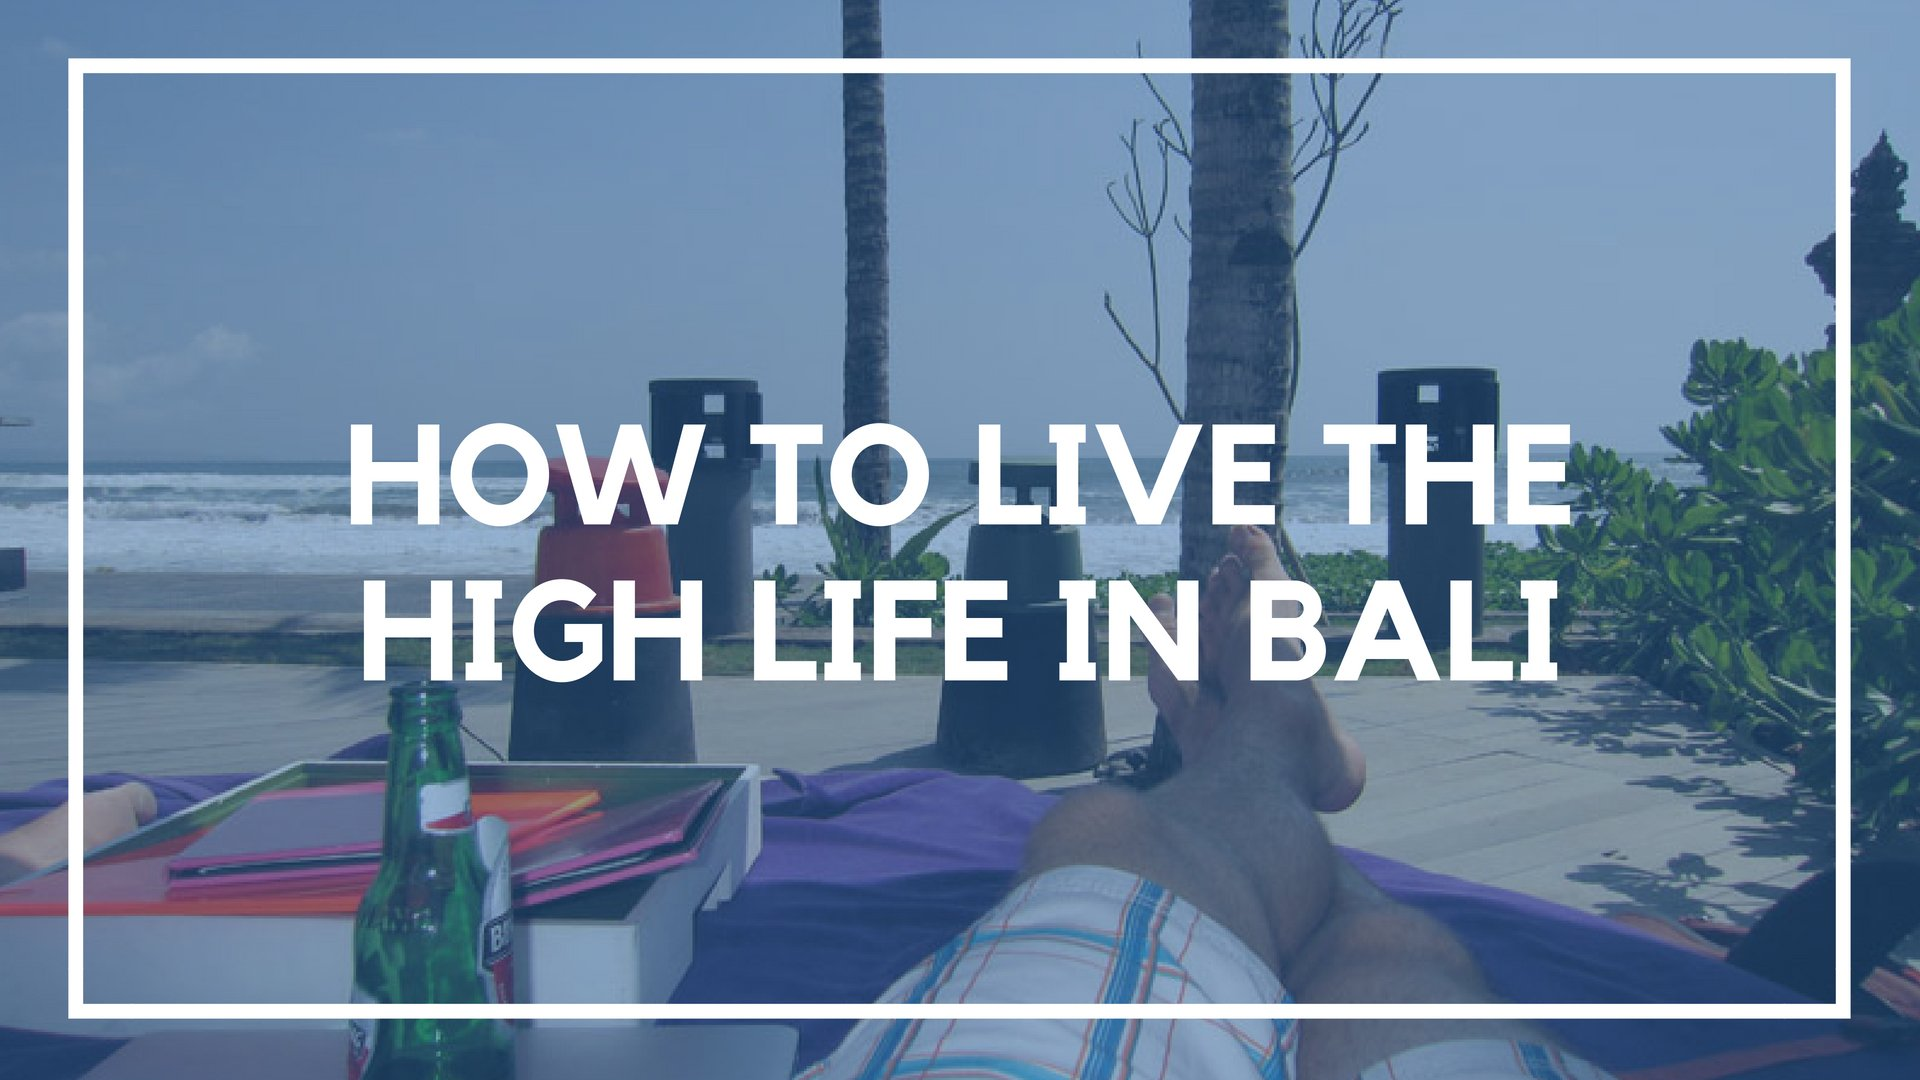 How to Live the High Life in Bali